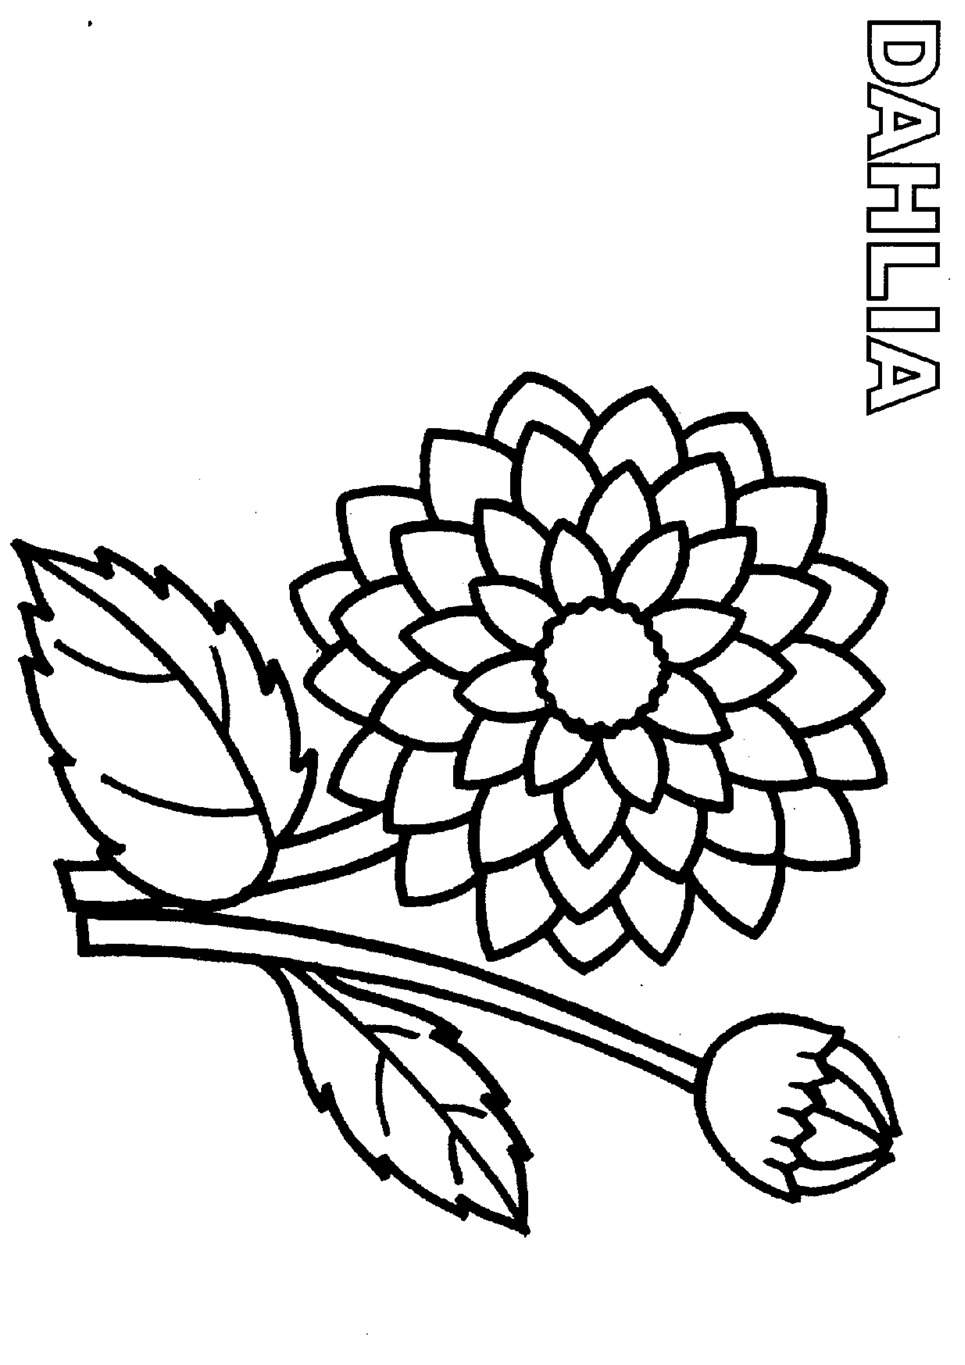 965x1365 Unique Dahlia Coloring Page Collection Printable Coloring Sheet